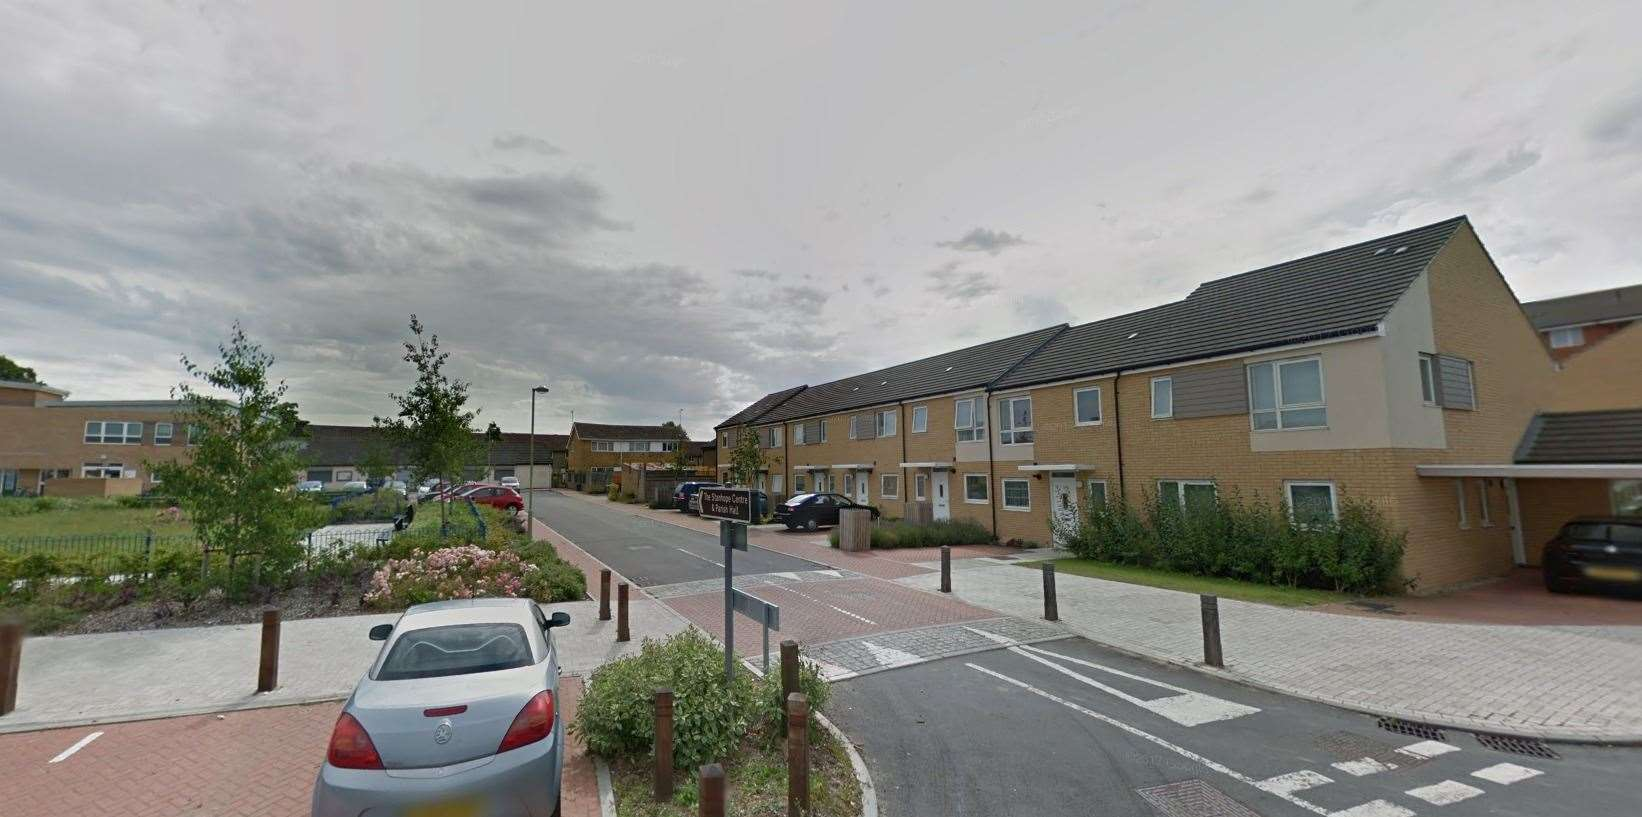 Police were called to Otterden Close after reports of children using catapults. Picture: Google (19032197)